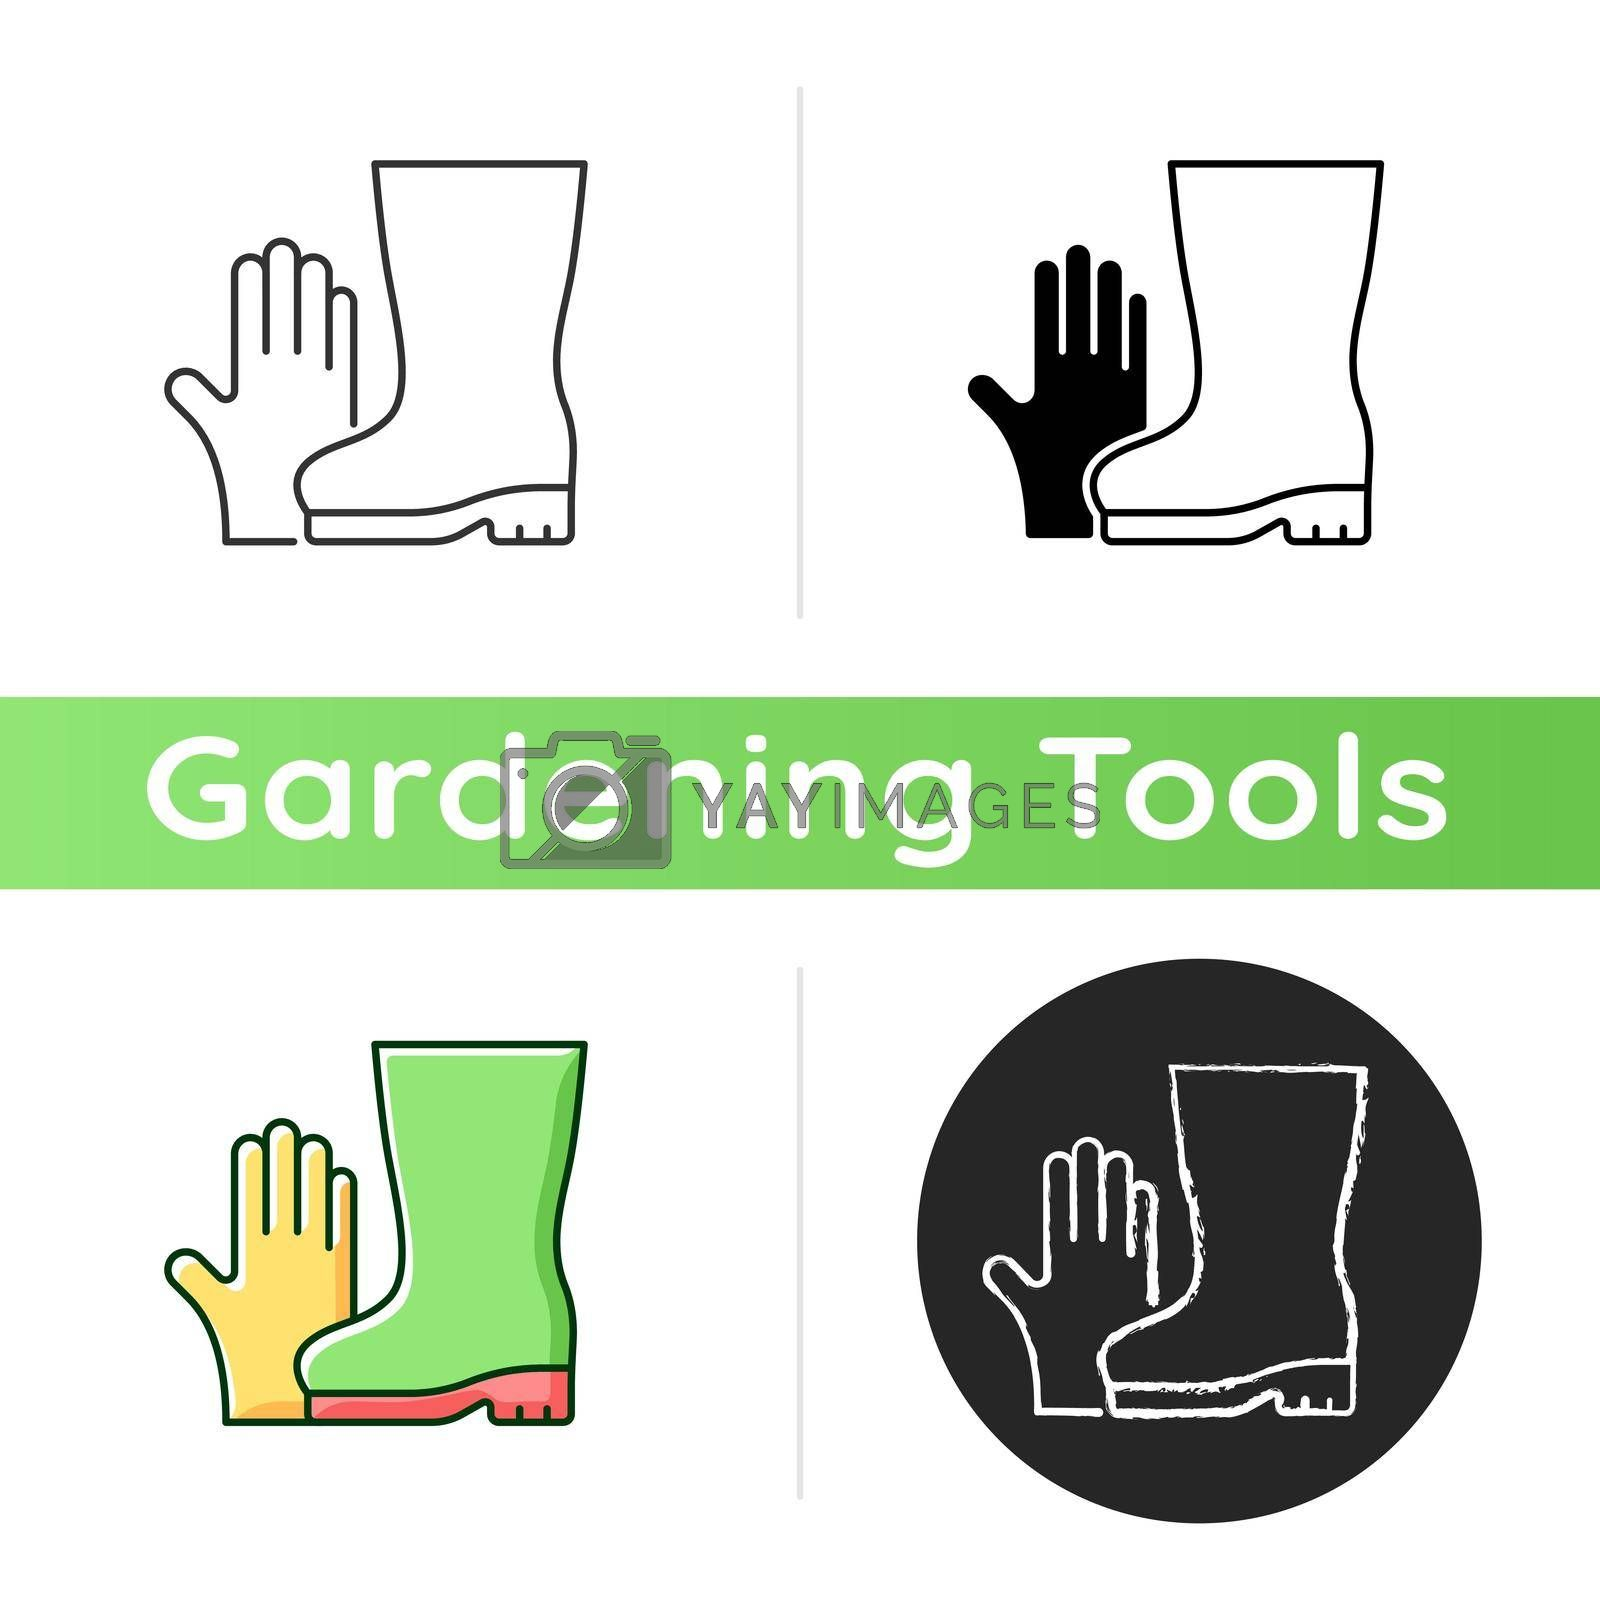 Gardening gloves and boots icon. Garden and yard work. Keeping hands and fingernails safe and clean. Cuts and scrapes prevention. Linear black and RGB color styles. Isolated vector illustrations